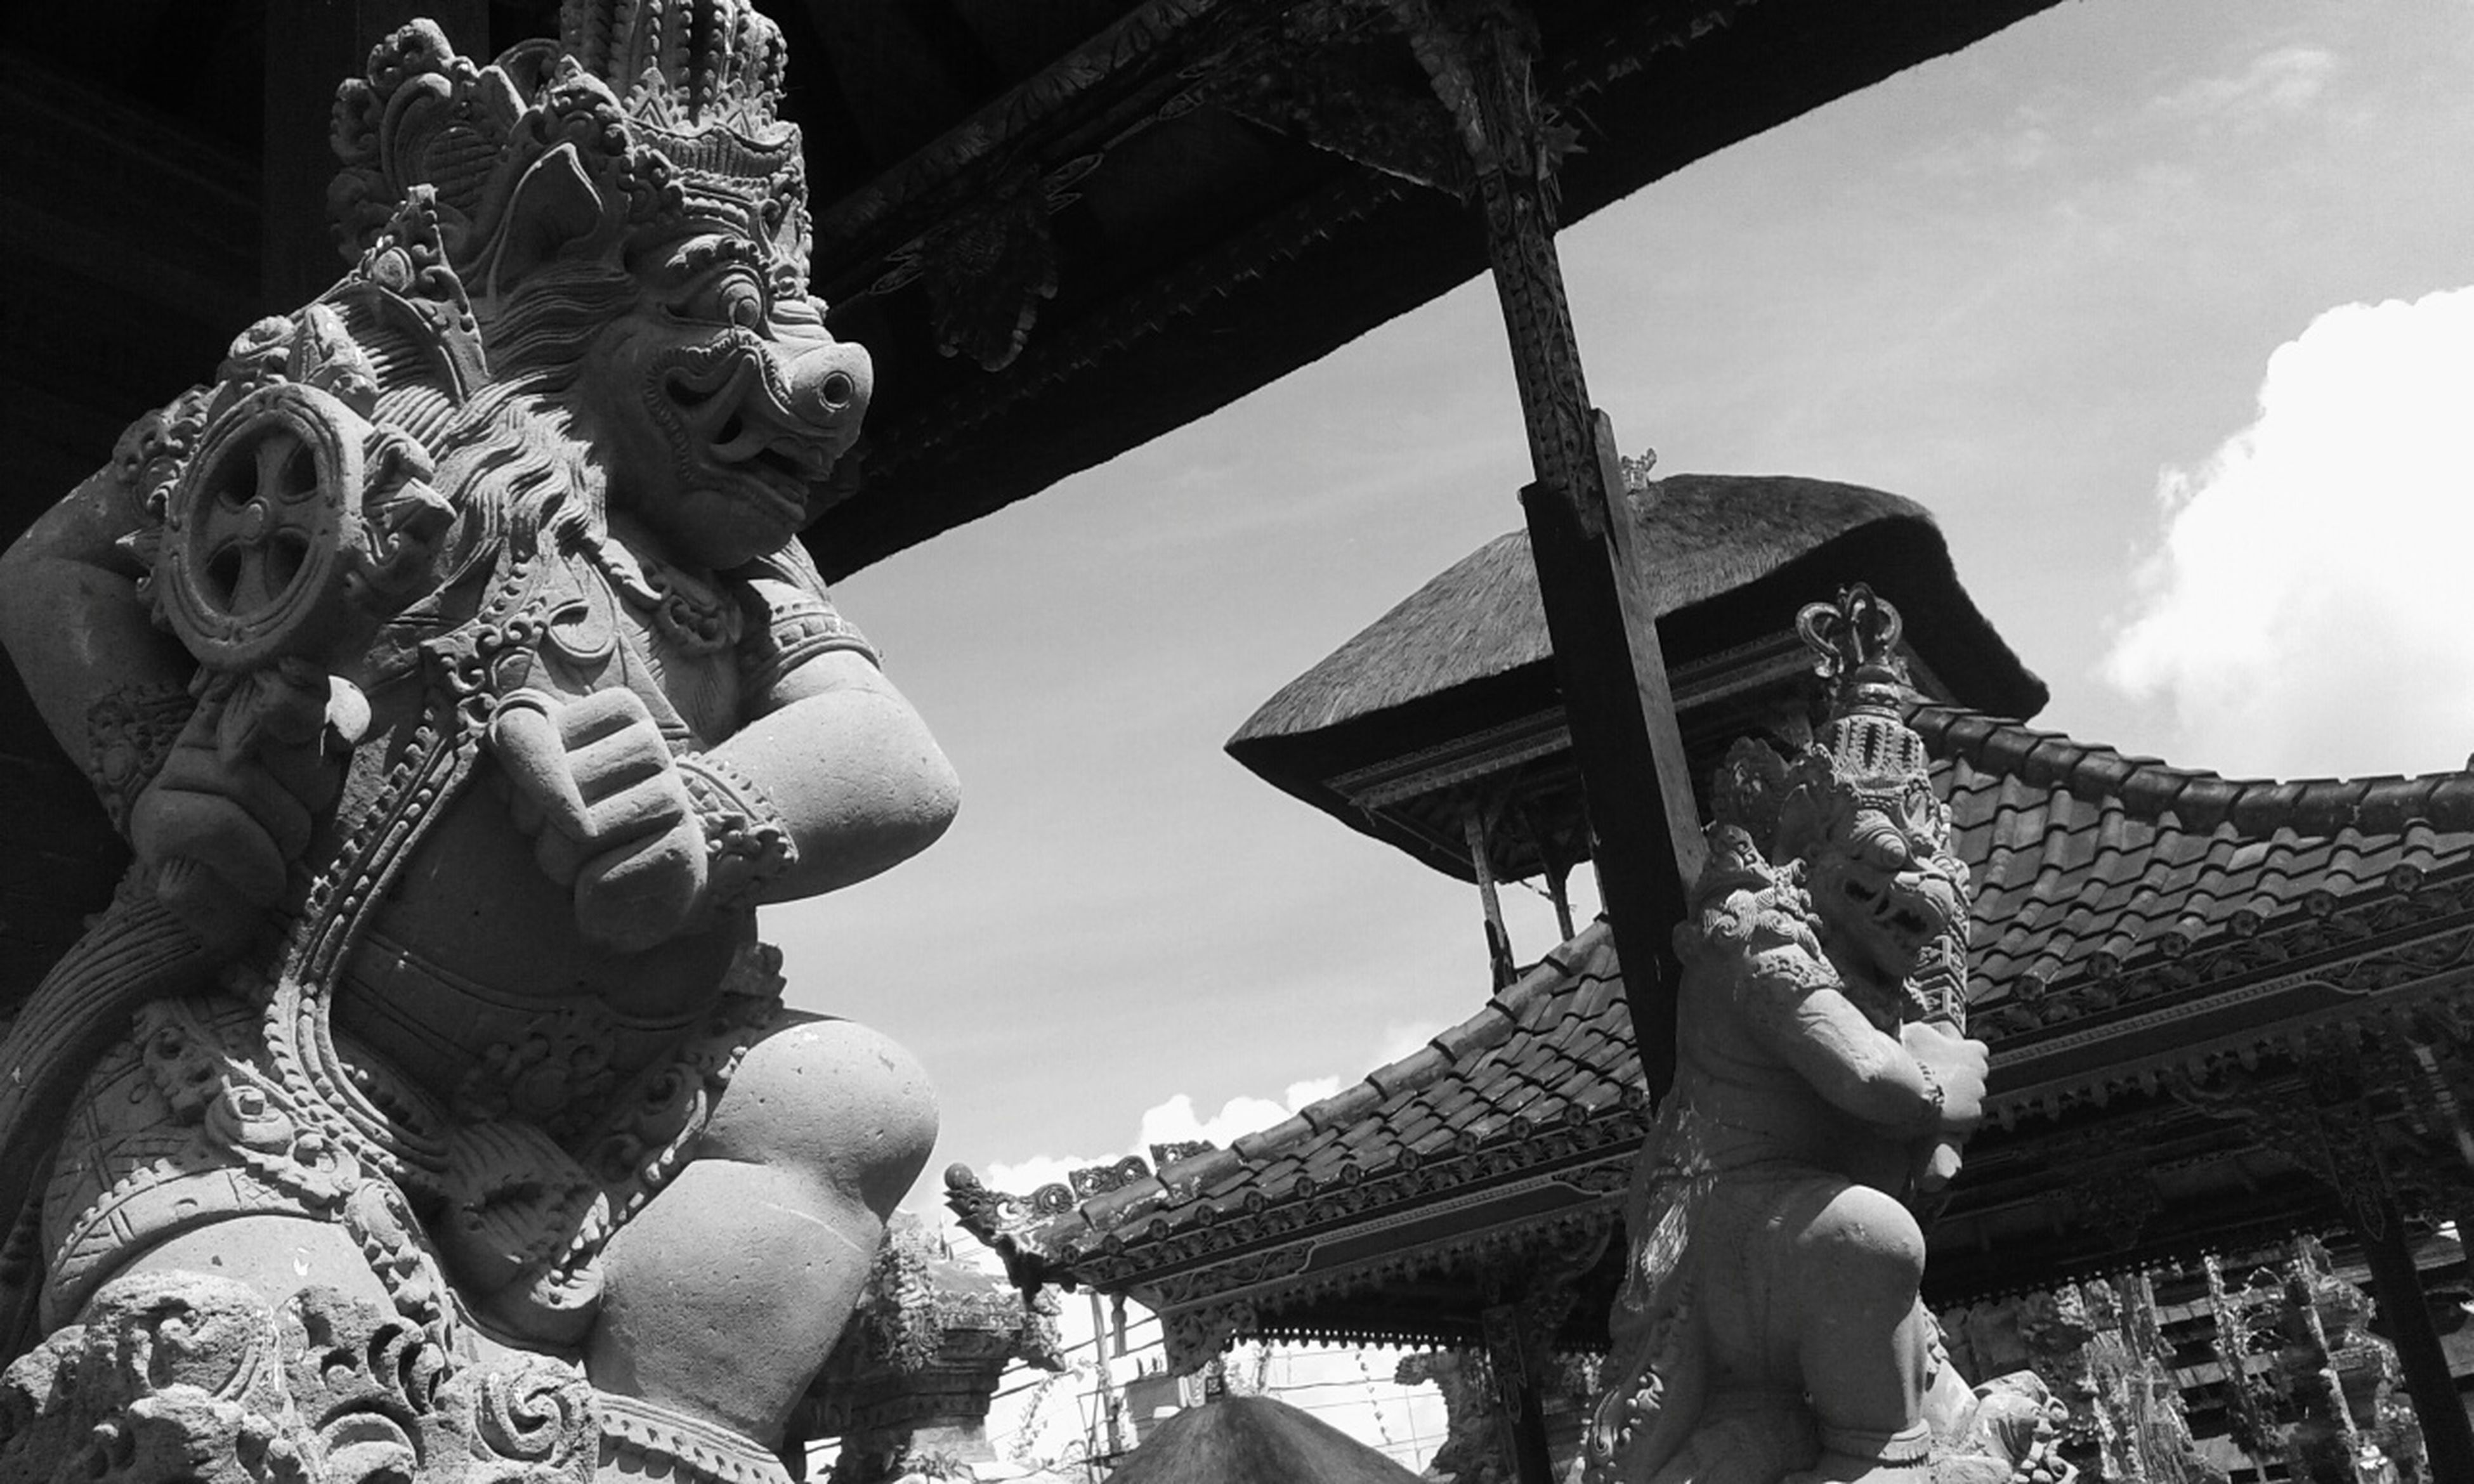 religion, low angle view, place of worship, spirituality, temple - building, sculpture, famous place, sky, statue, built structure, art and craft, architecture, travel destinations, tourism, art, travel, history, cultures